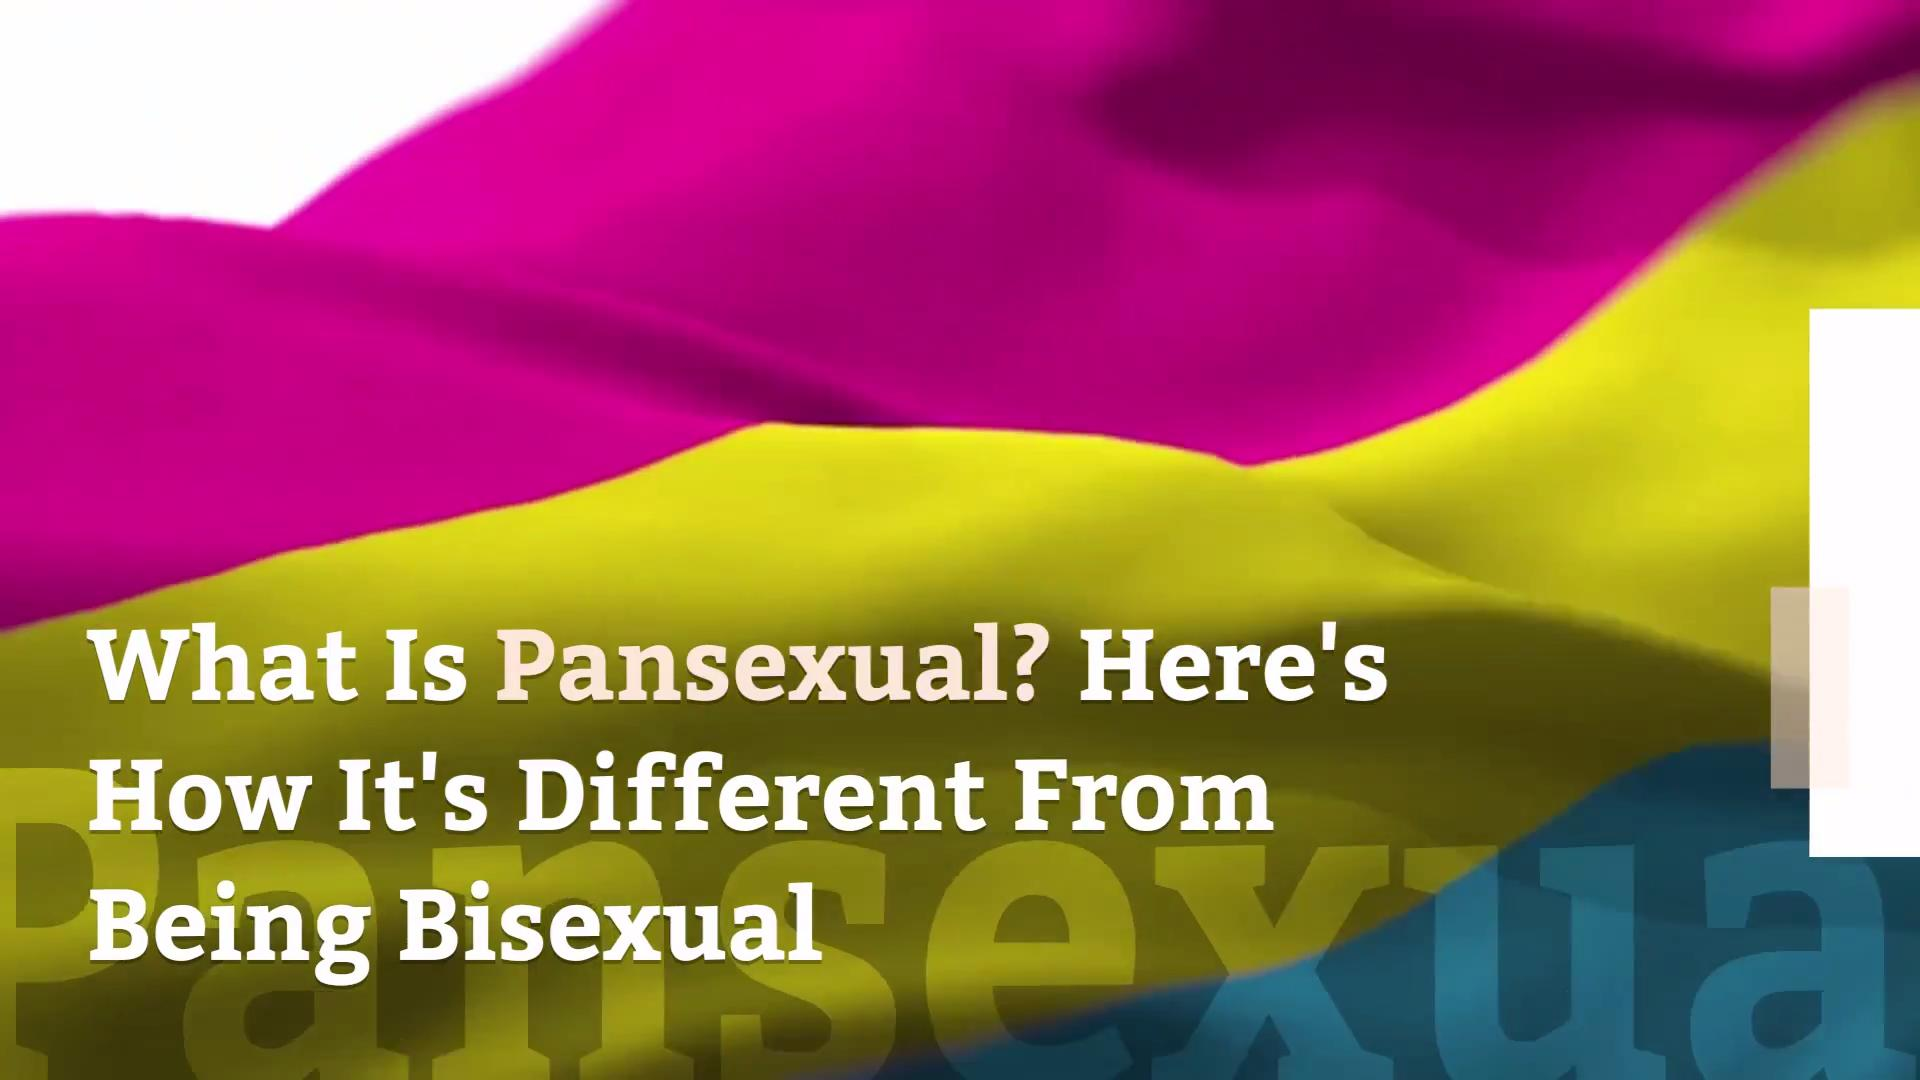 What Is Pansexual Here S How It S Different From Being Bisexual Health Com